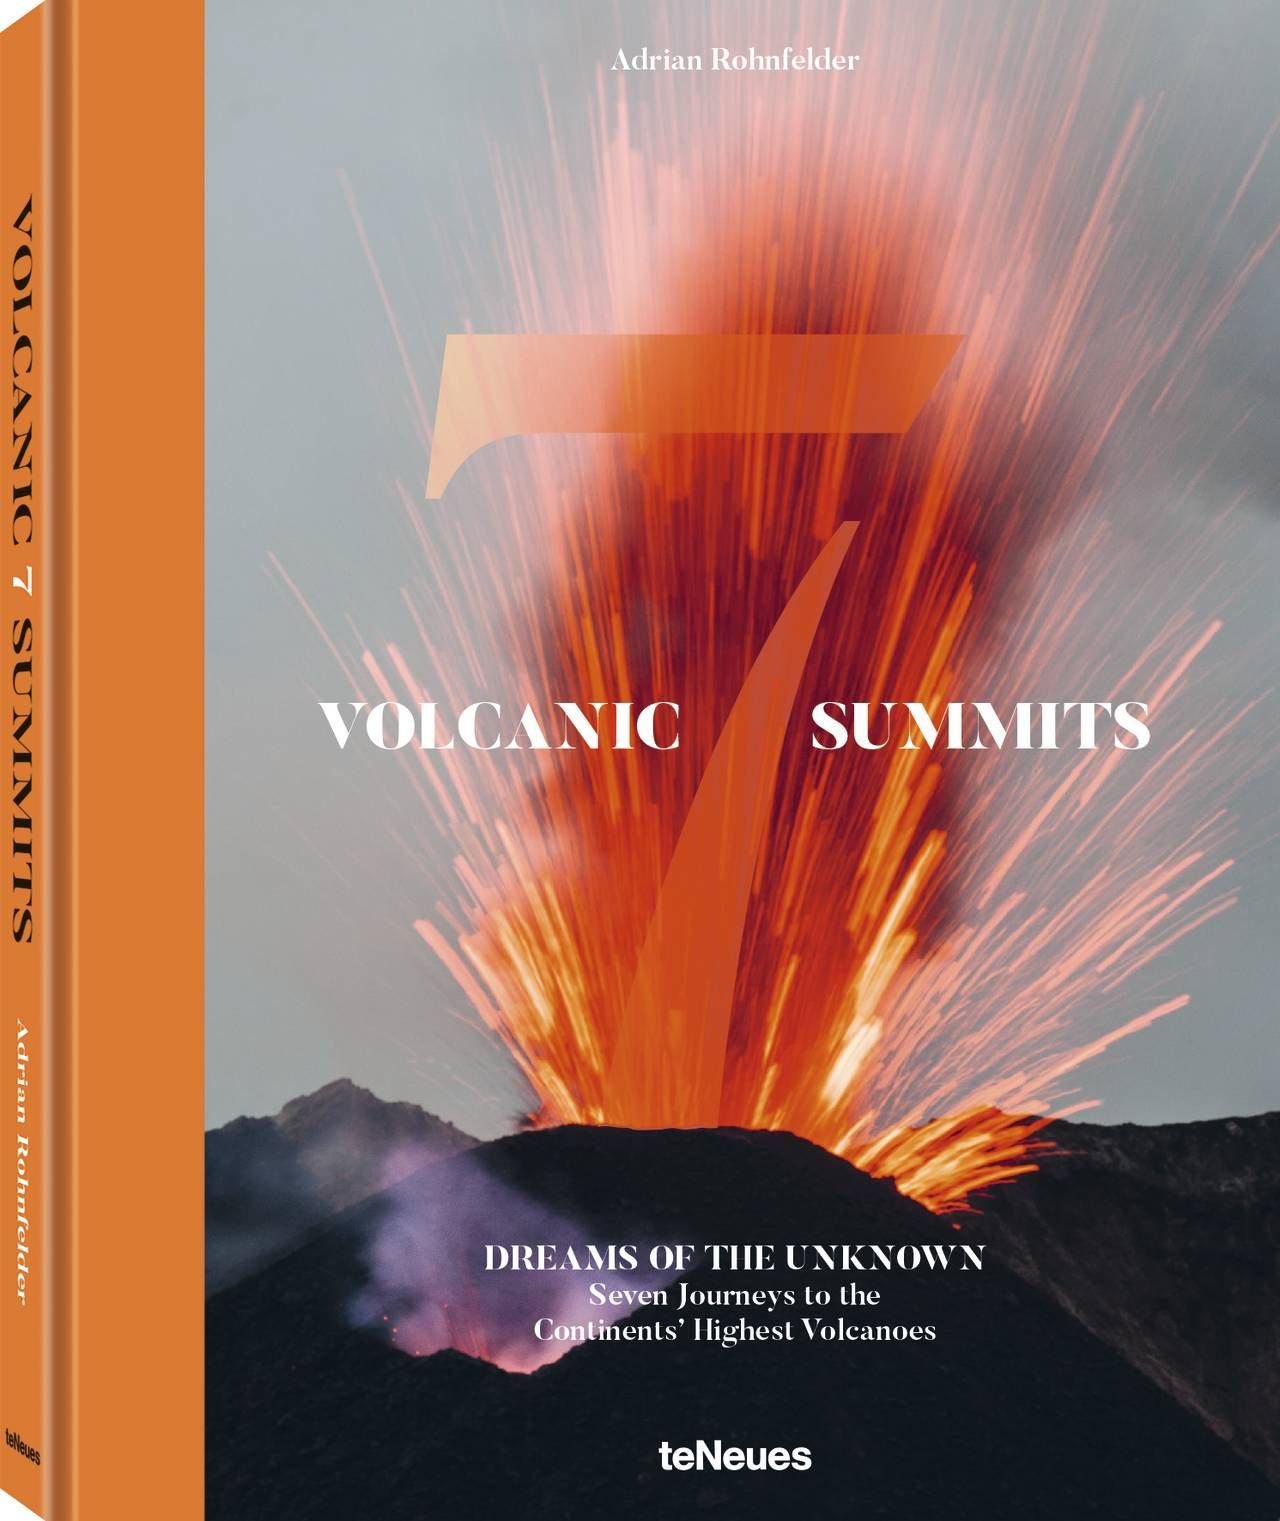 © VOLCANIC 7 SUMMITS - Dreams of the Unknown by Adrian Rohnfelder, published by teNeues, www.teneues.com, Explosive eruption of Stromboli volcano near Sicily, Photo © Adrian Rohnfelder. All rights reserved.